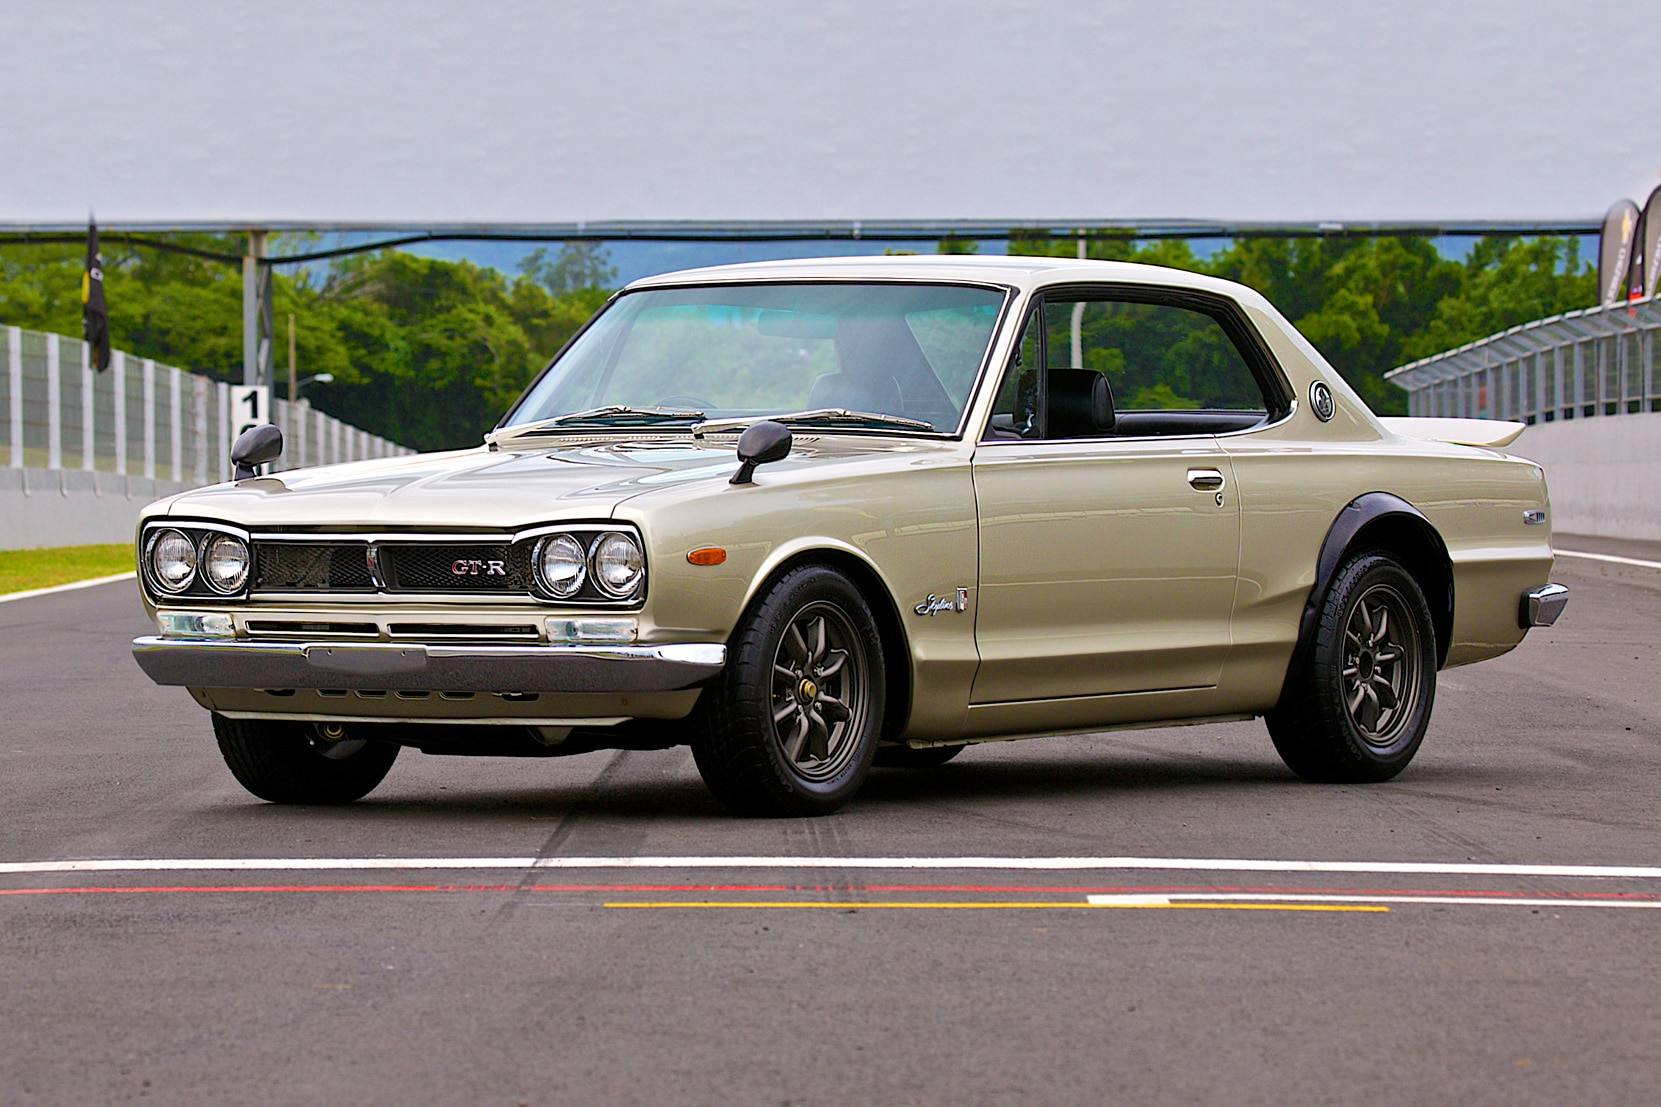 2017 Nissan Gt R Msrp >> This 1973 Nissan Skyline GT-R is Our Favorite Japanese Car from Pebble Beach Auctions ...